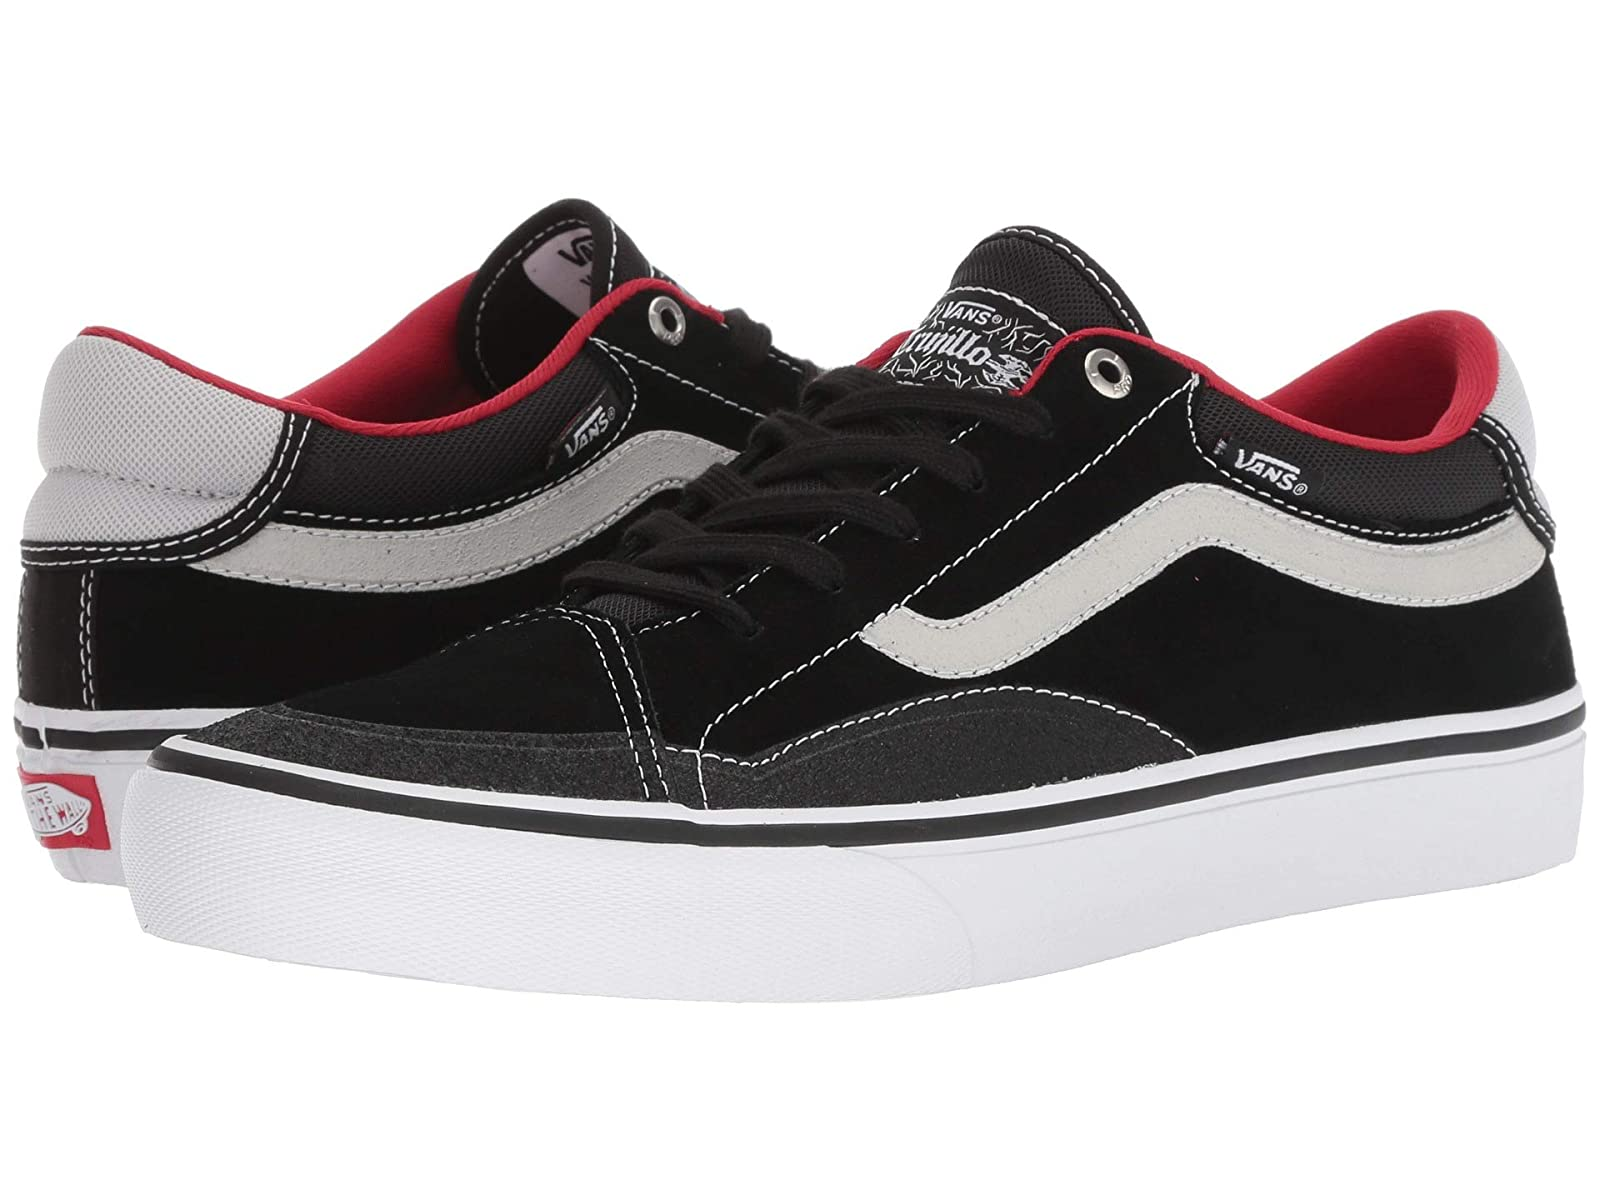 Vans TNT Advanced PrototypeAtmospheric grades have affordable shoes